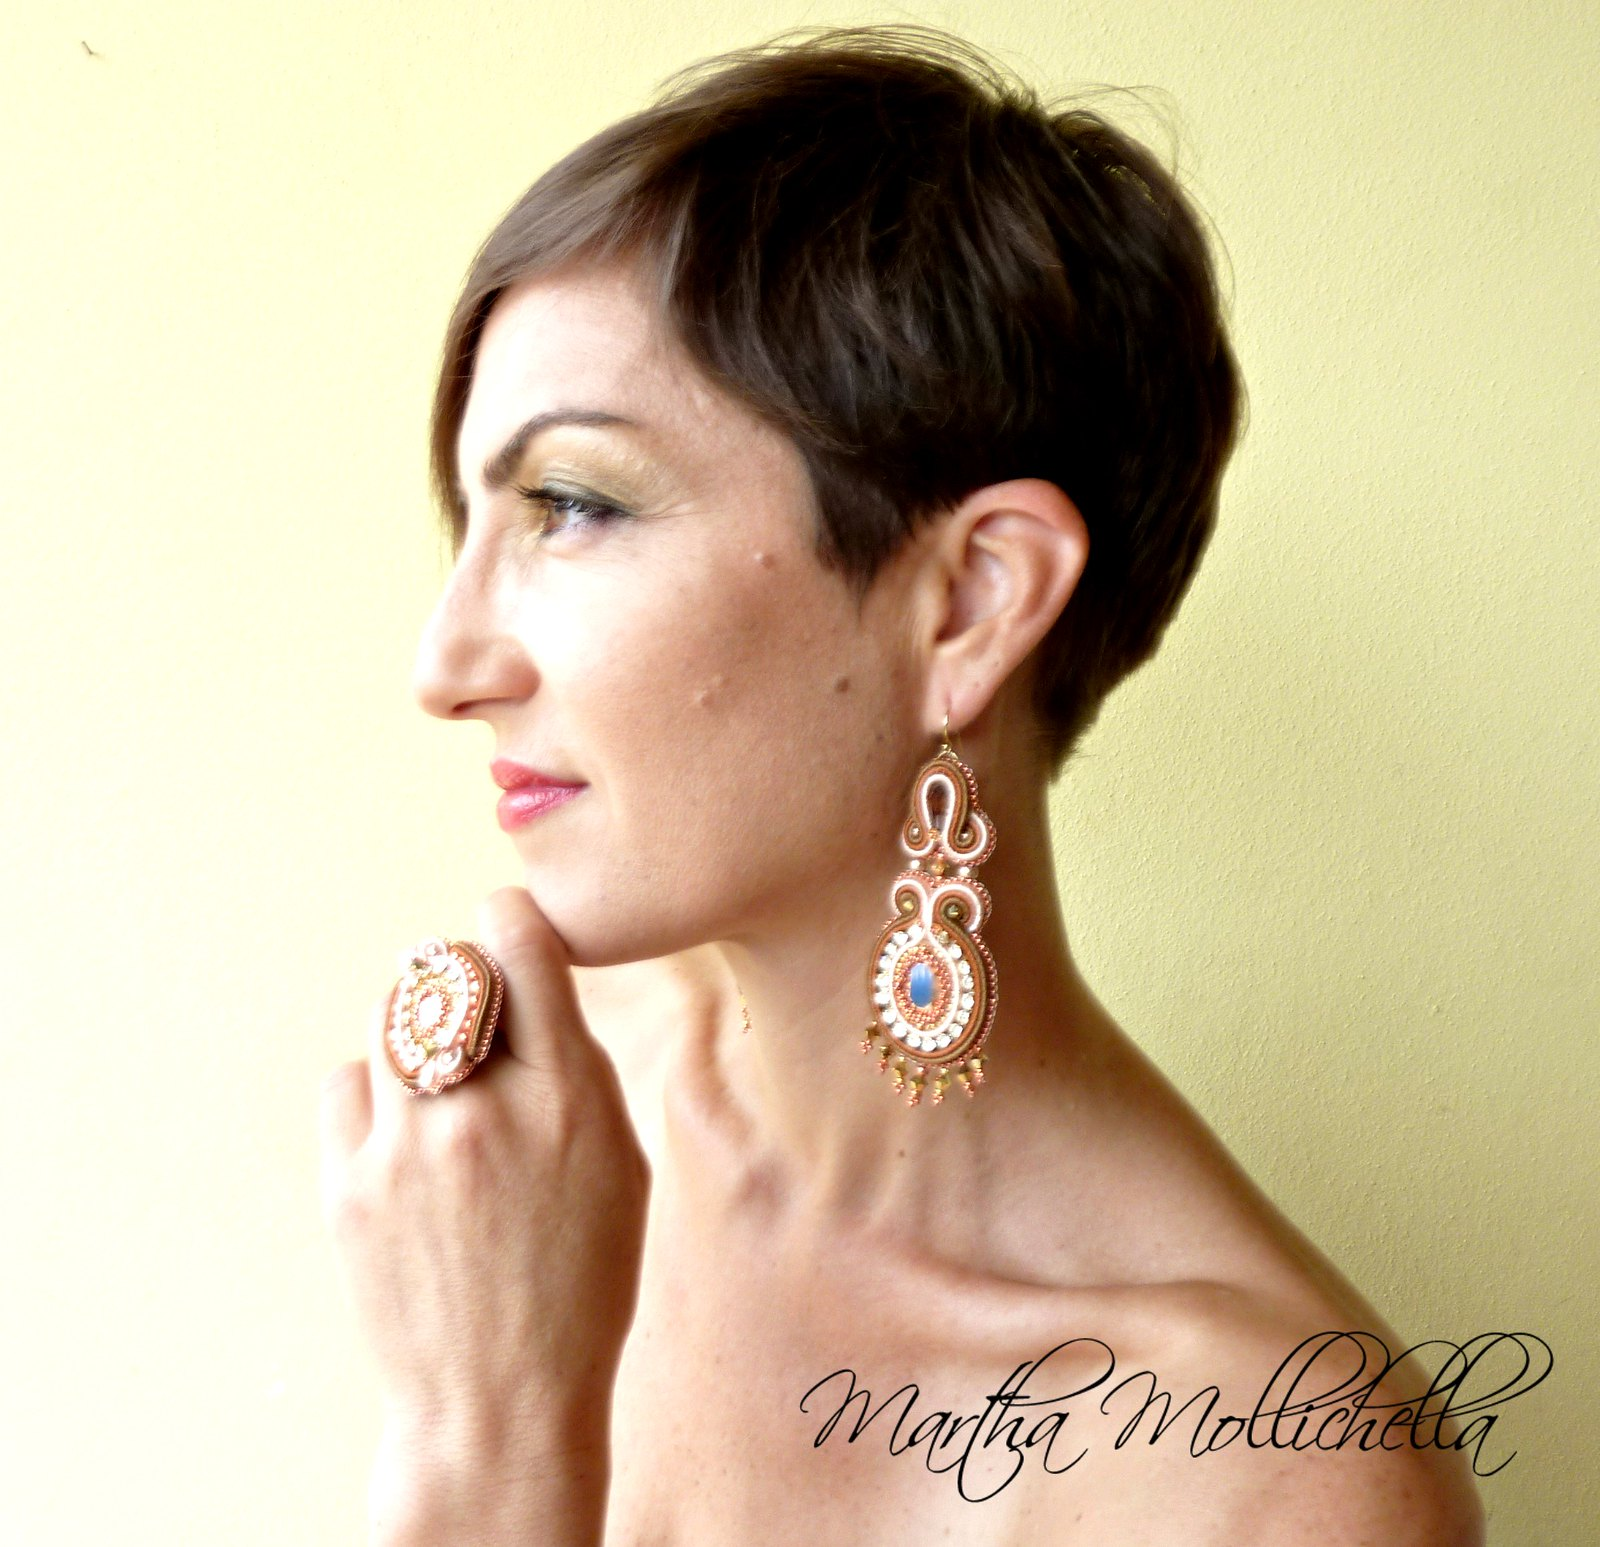 Swarovski Soutache Earrings handmade in Italy by Martha Mollichella